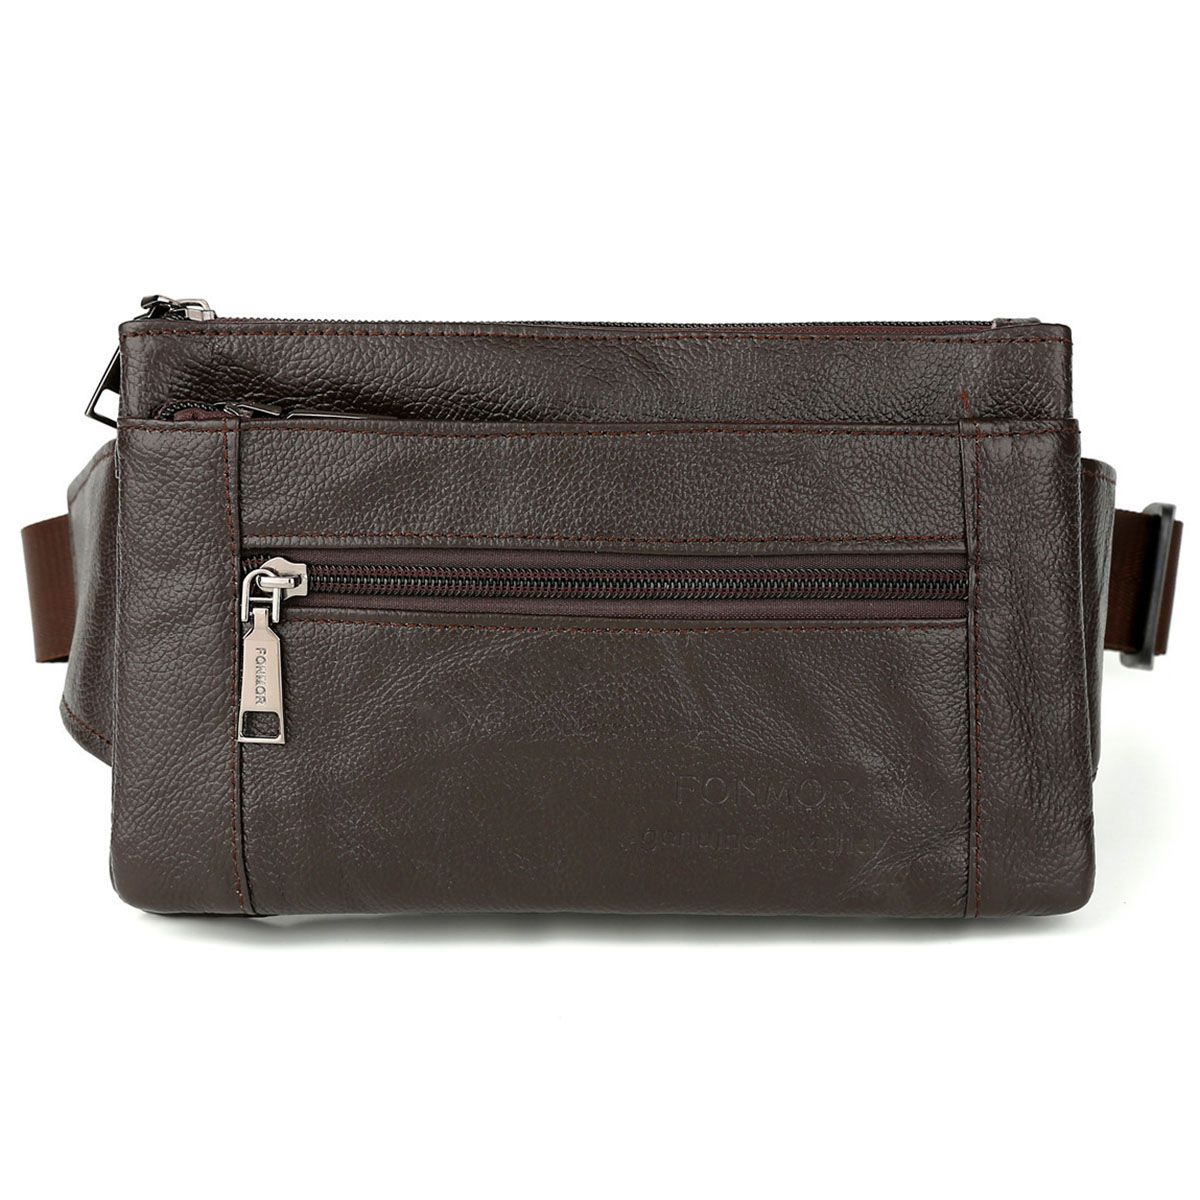 AFBC FONMOR Waist Packs Fanny Pack Belt Bag Phone Pouch Bags Travel Waist Pack Male Small Waist Bag Leather Pouch(Brown)